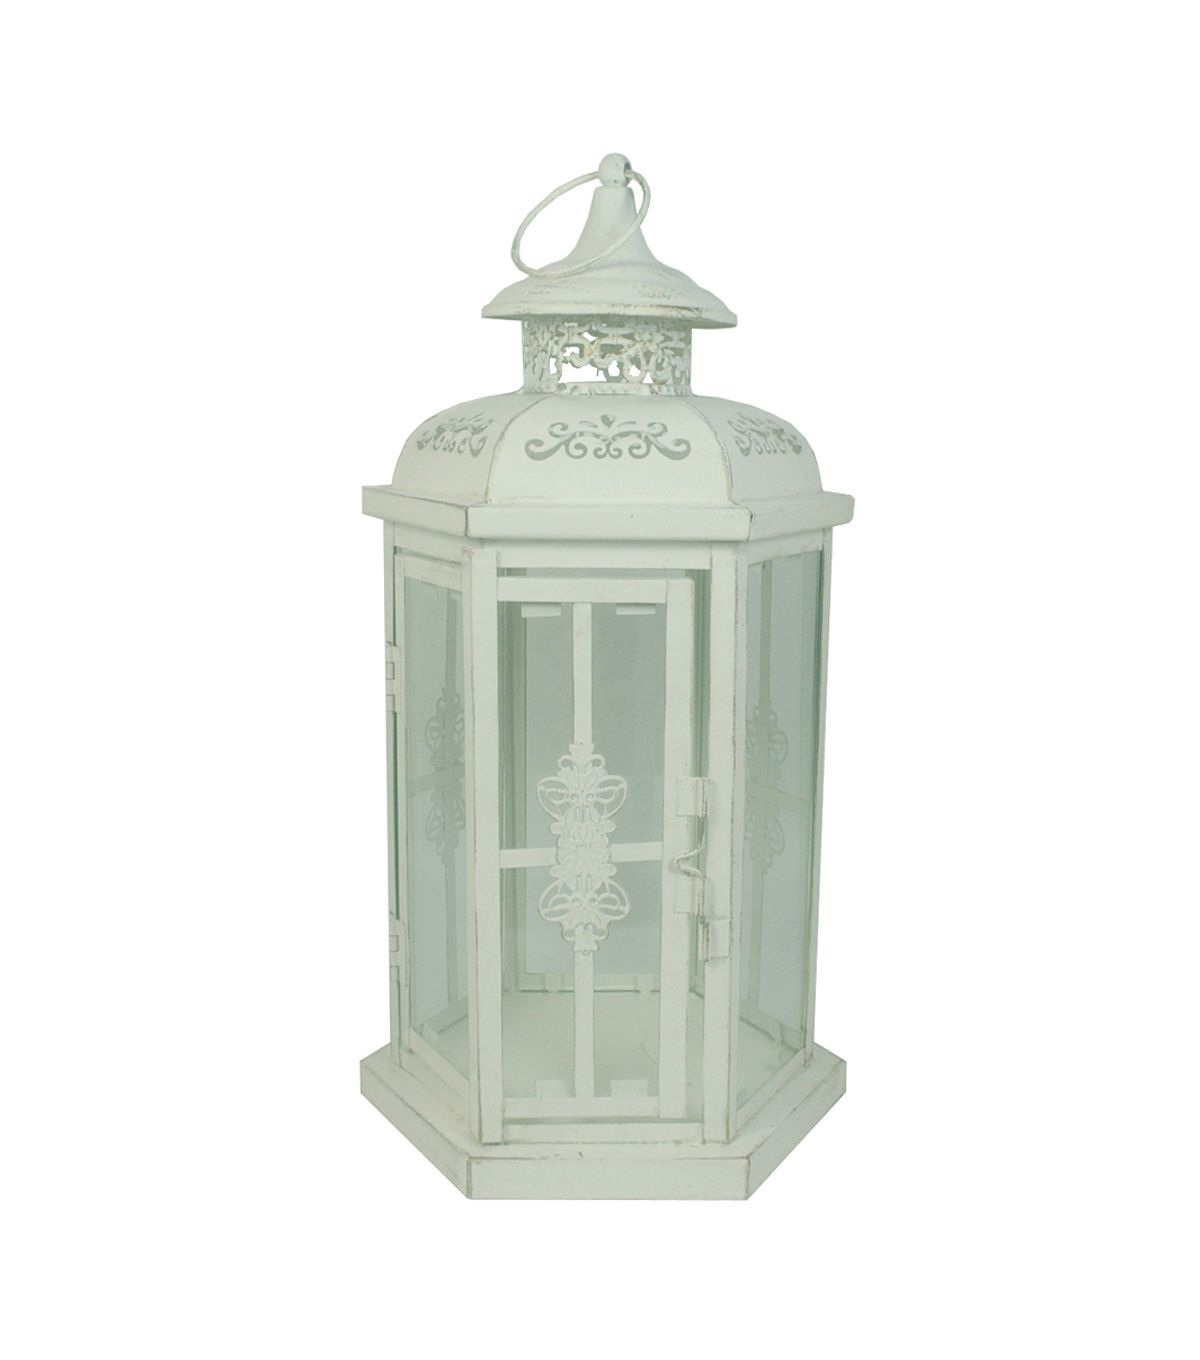 Suspended Style 32 Floating Staircase Ideas For The: Hudson 43 Candle & Light Collection Lantern Distressed